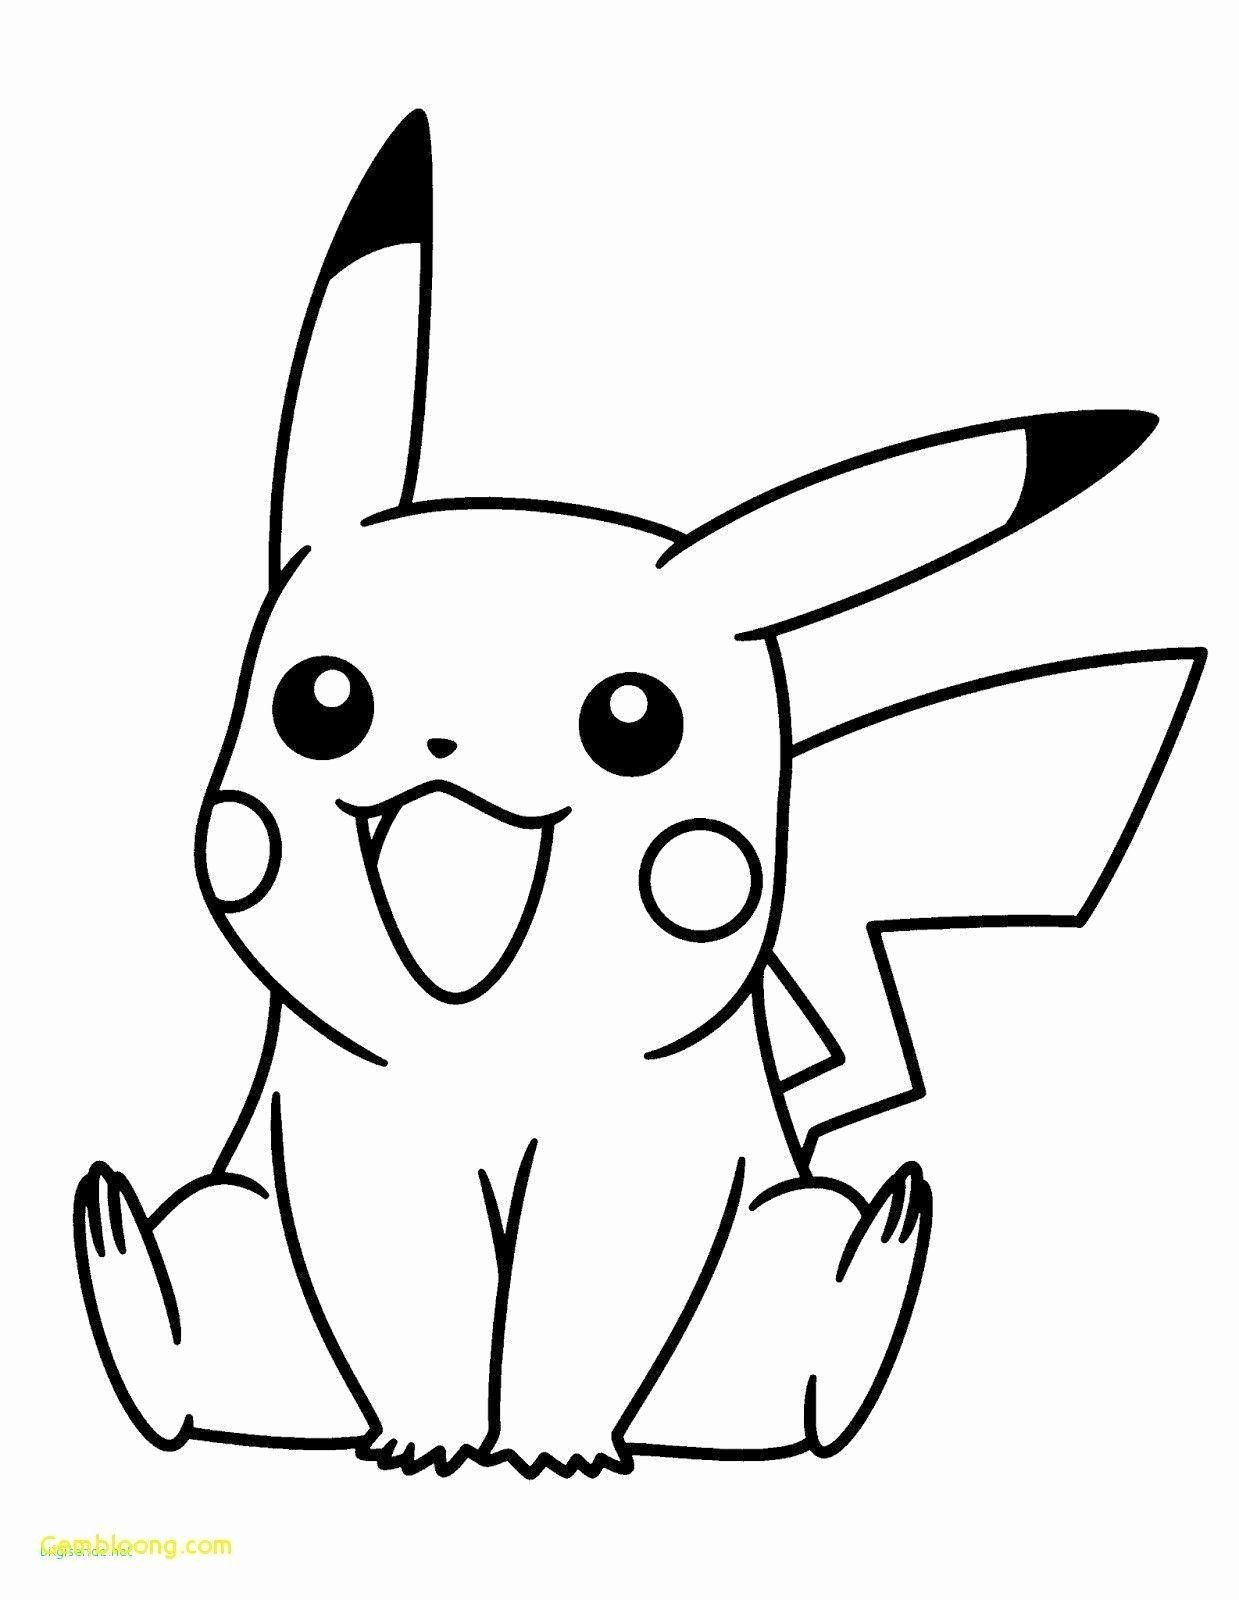 Free Anime Drawing Book Lovely Anime Coloring Book Pikachu Coloring Page Kitty Coloring Pokemon Coloring Pages